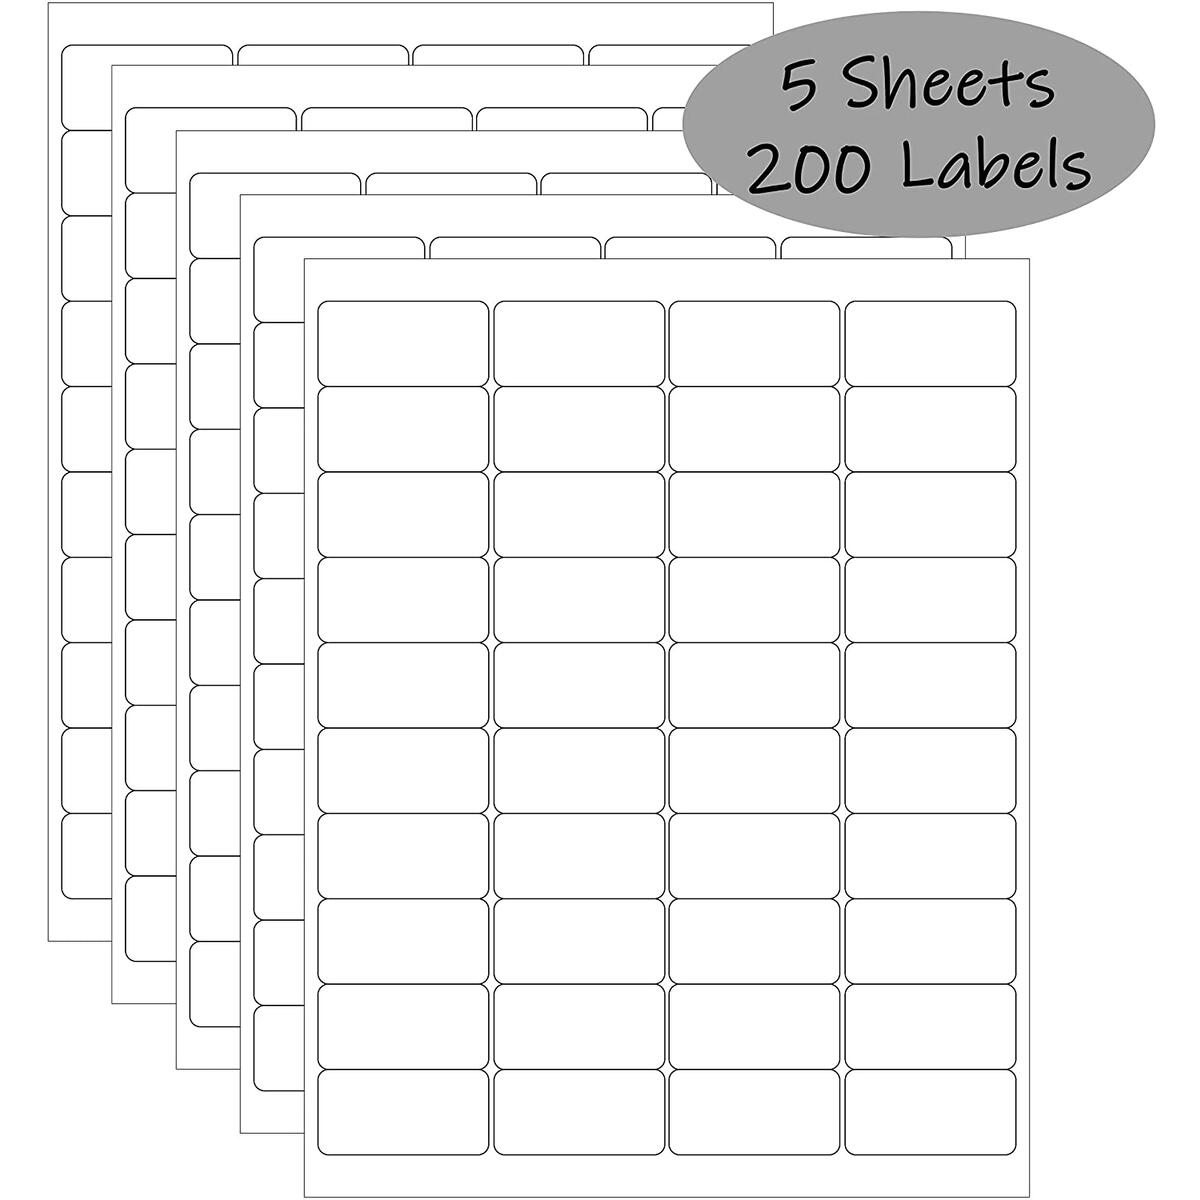 2x1 inch White Waterproof Labels For Inkjet Printer or Laser | Smudge-Proof, Oil-Proof Essential Oil Labels | Labels for Food, Bottles, Pantry, Lip Gloss, & Jars| 200 labels (5 sheets x 40 labels)